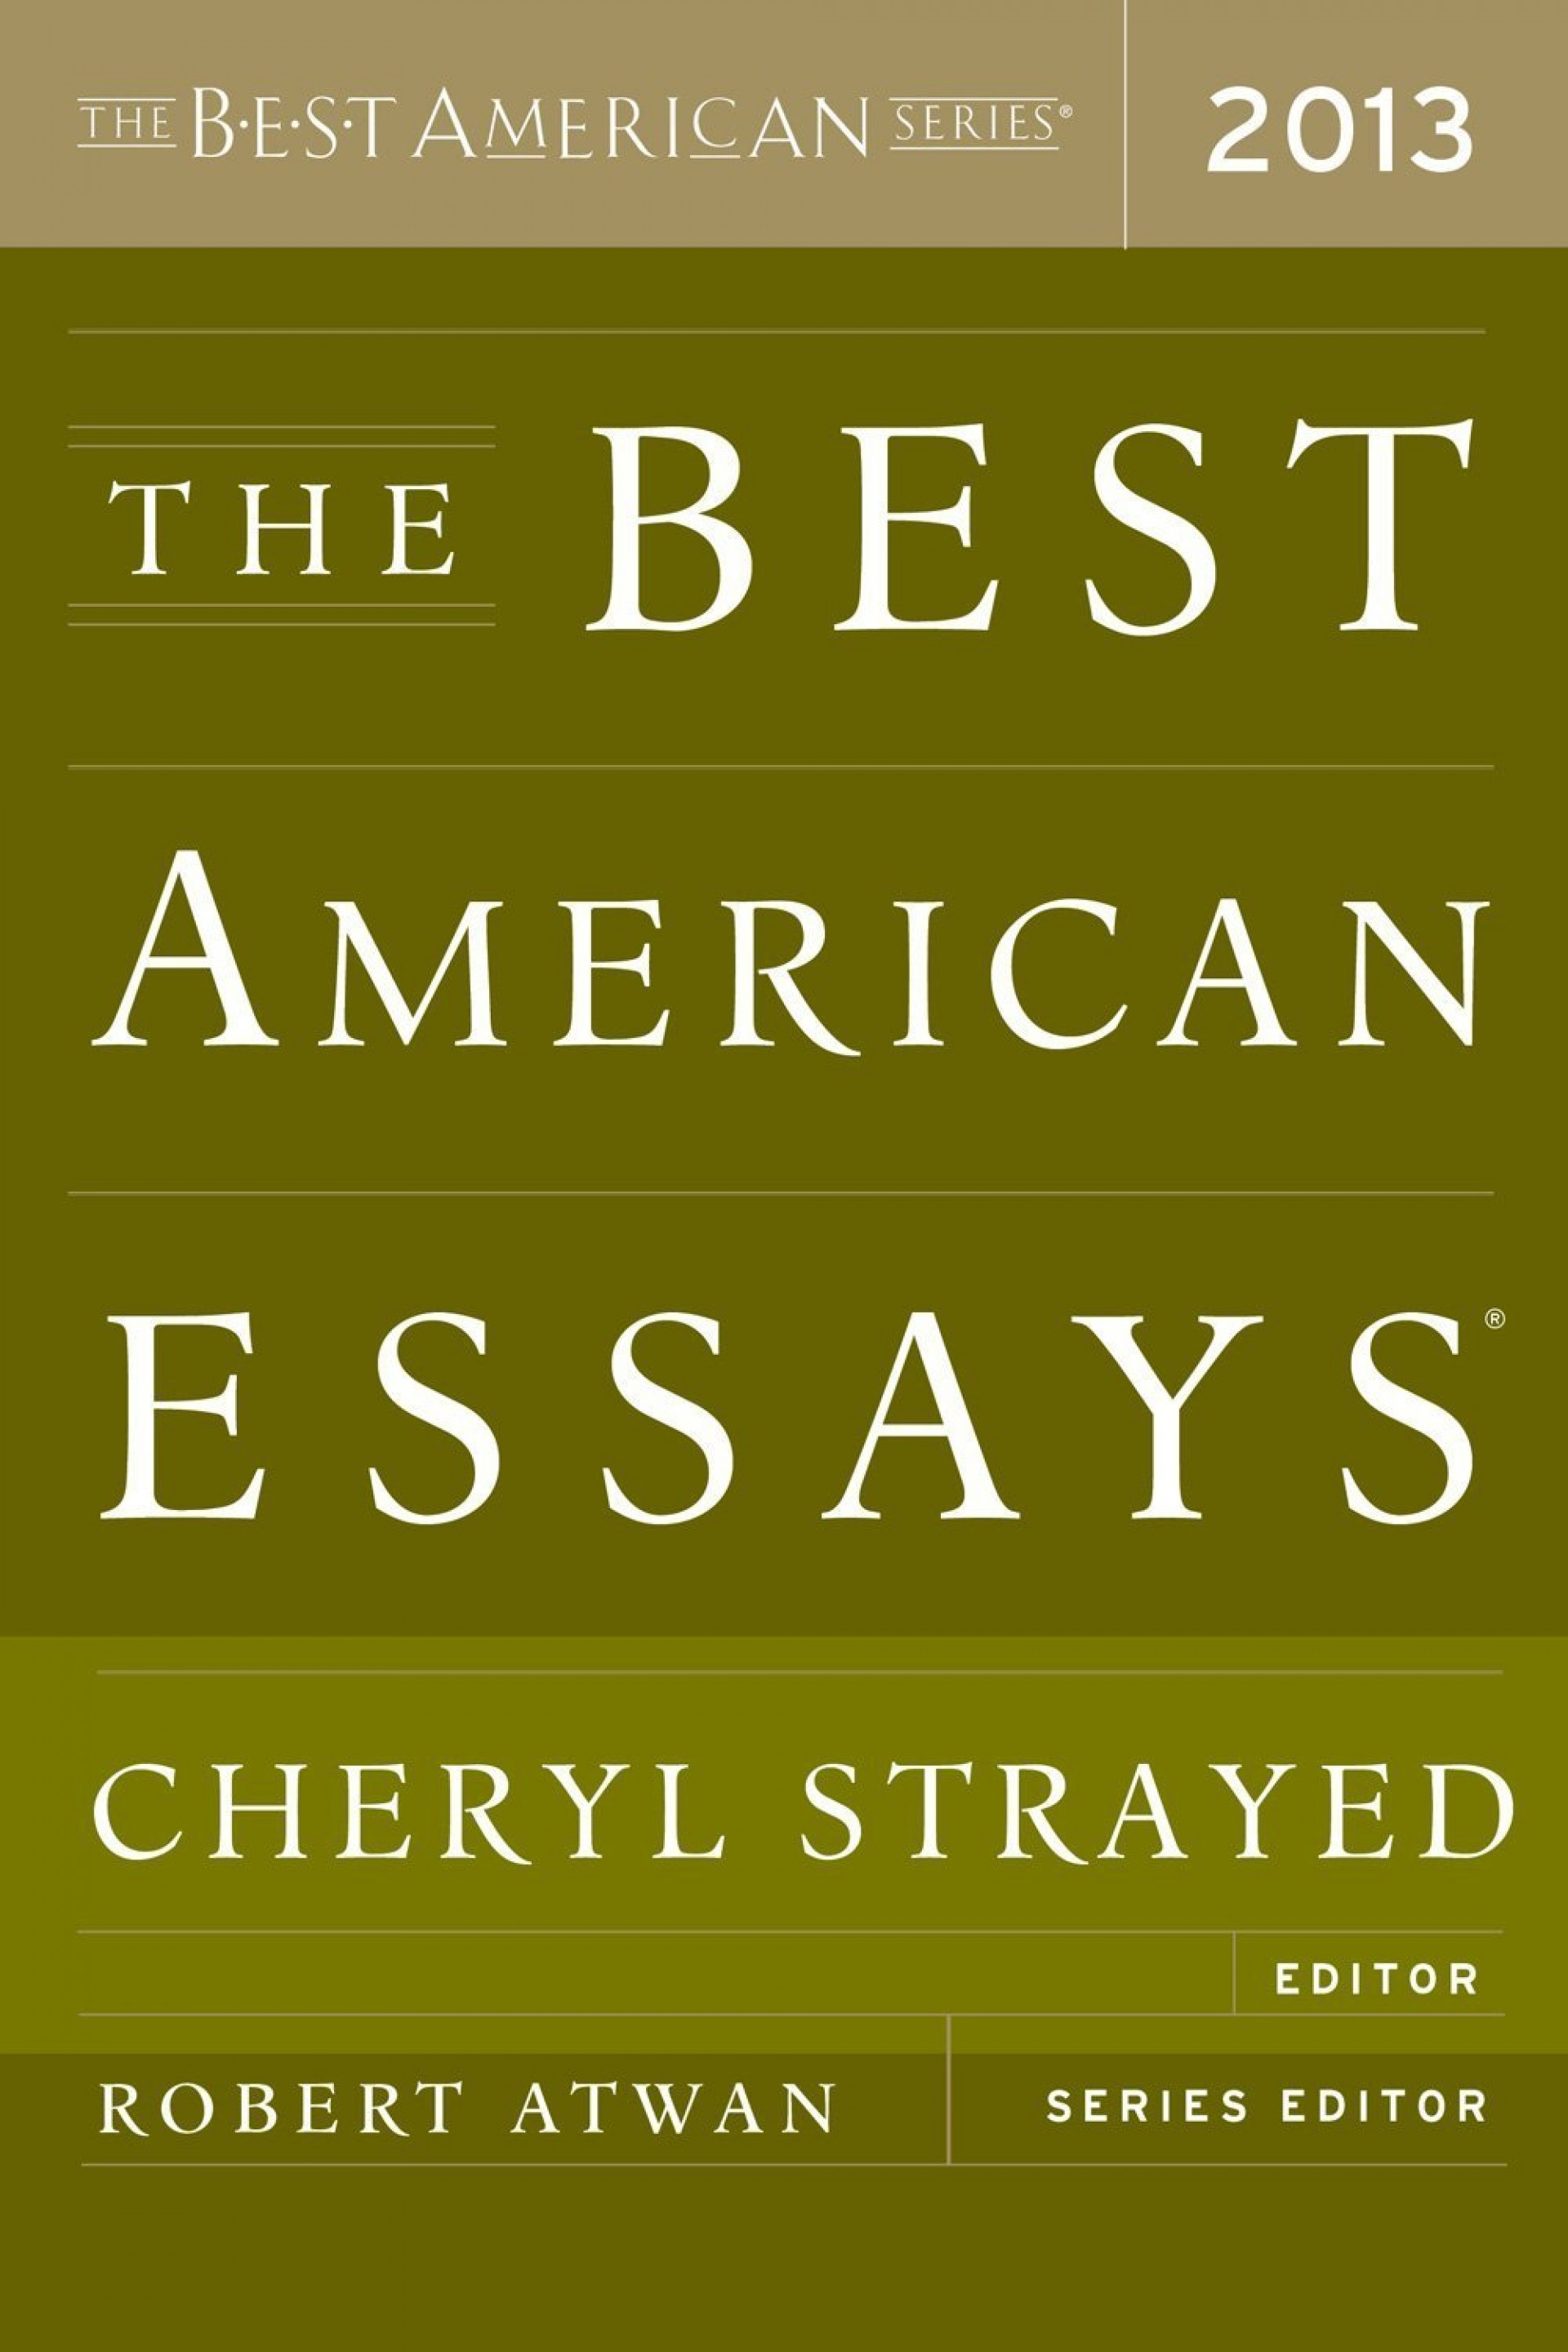 004 The Best American Essays Essay Wonderful 2018 List Pdf Download 2017 Free 1920